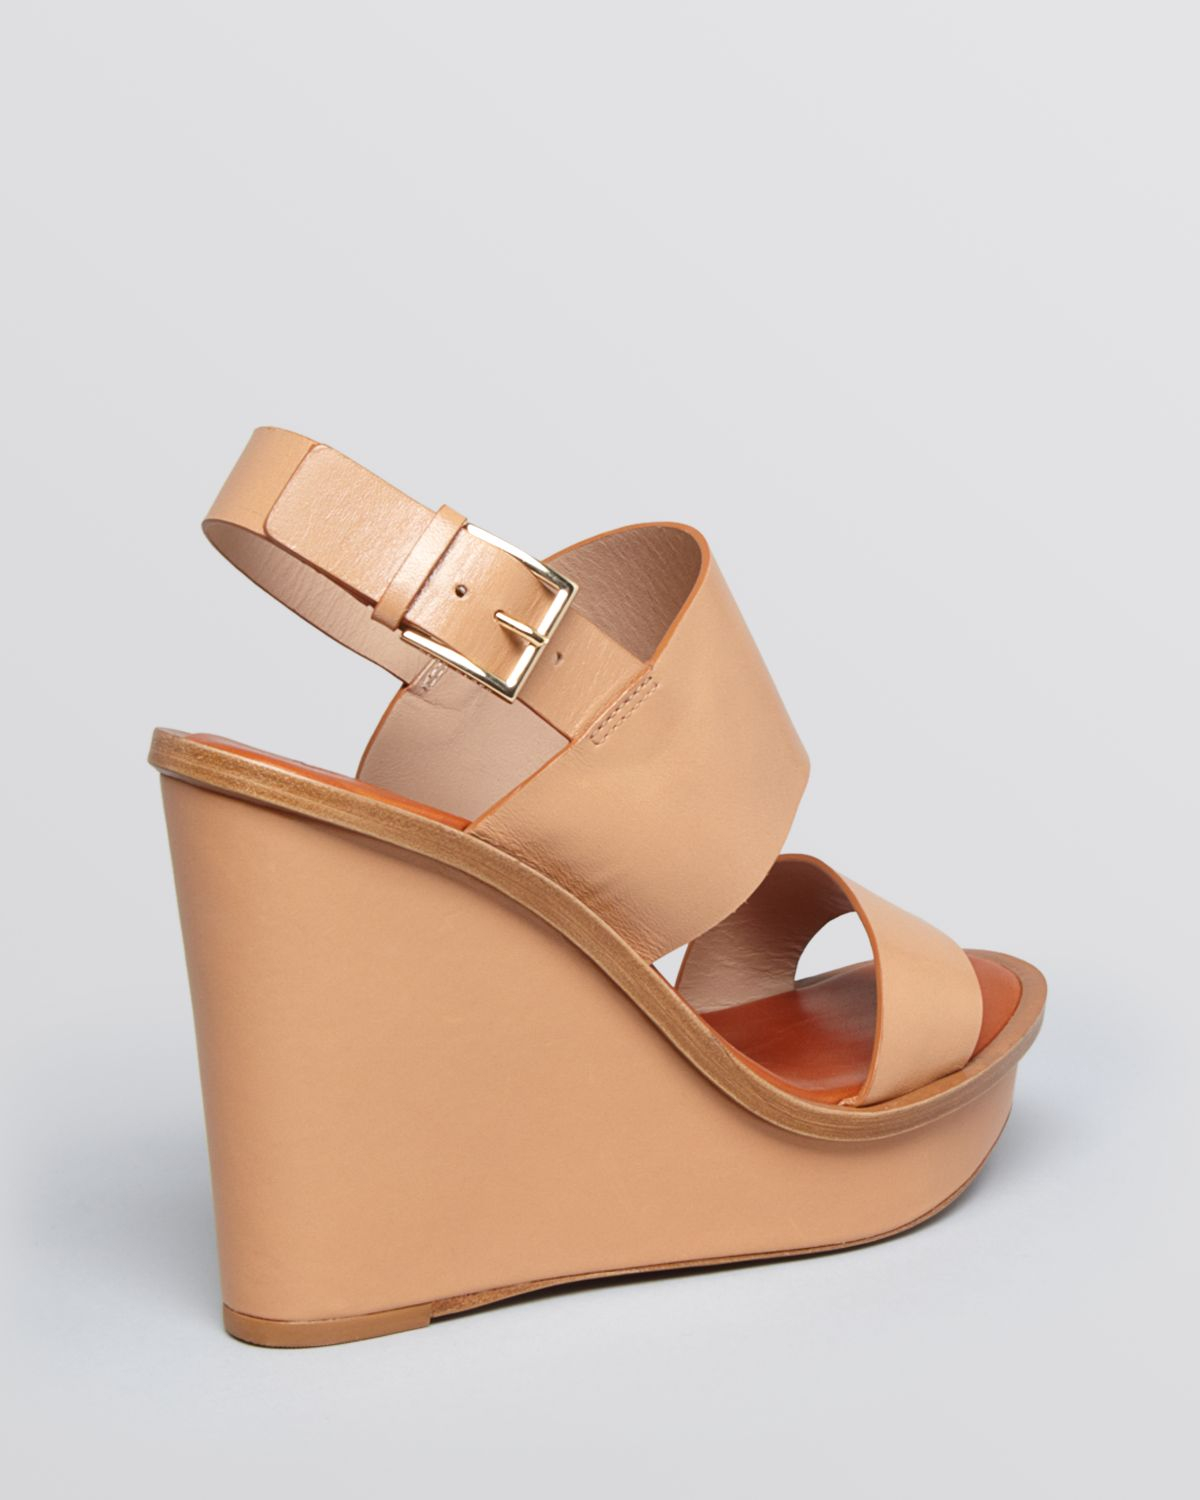 geniue stockist cheap price outlet Manchester Tory Burch Leather Platform Wedges discount genuine latest cheap online extremely tEEmt